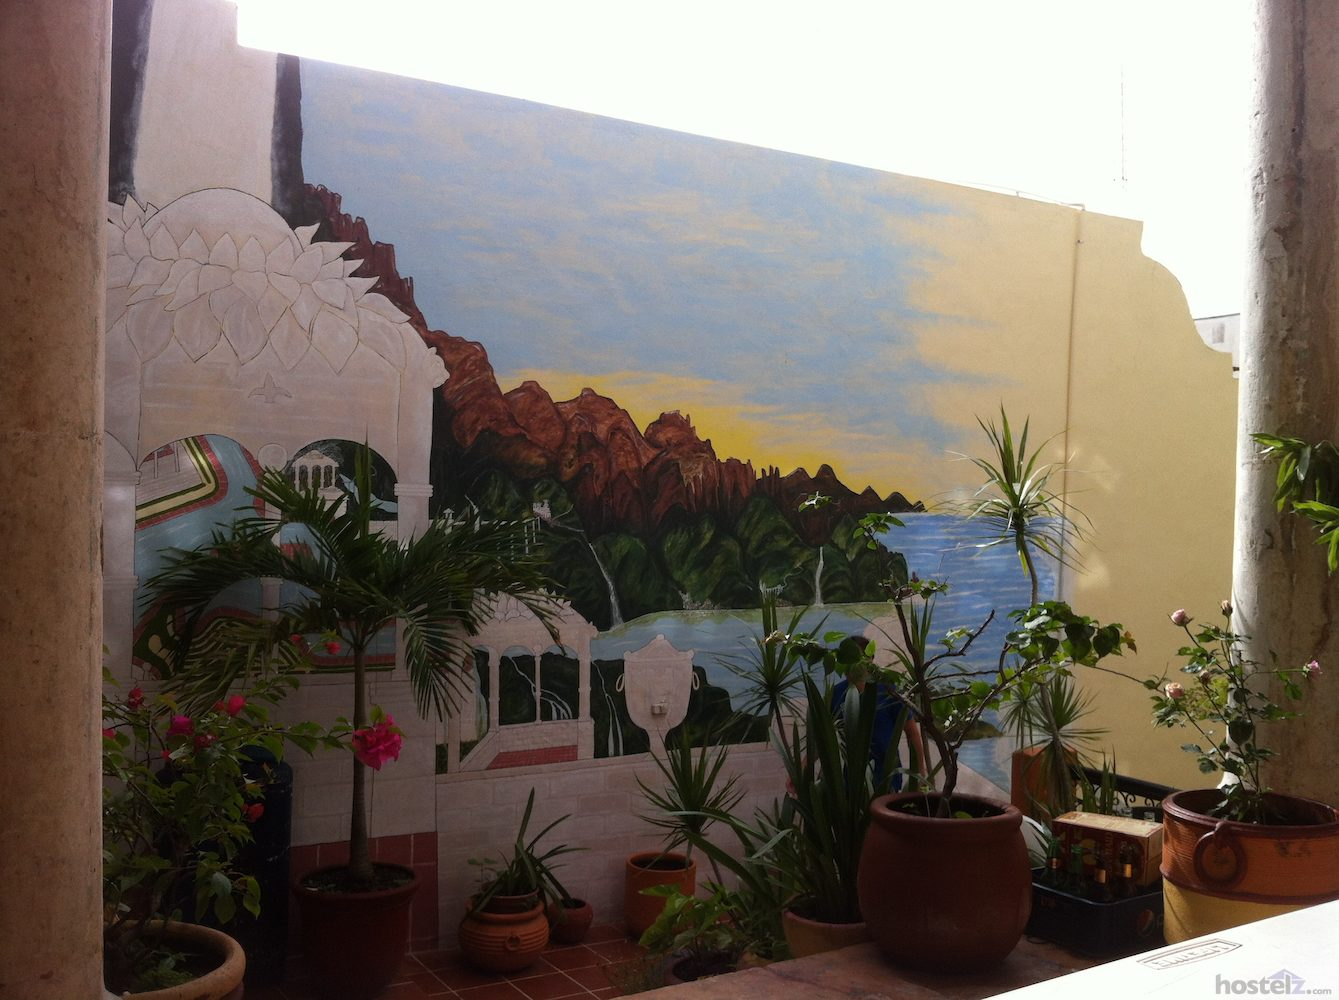 Painting in the communal area